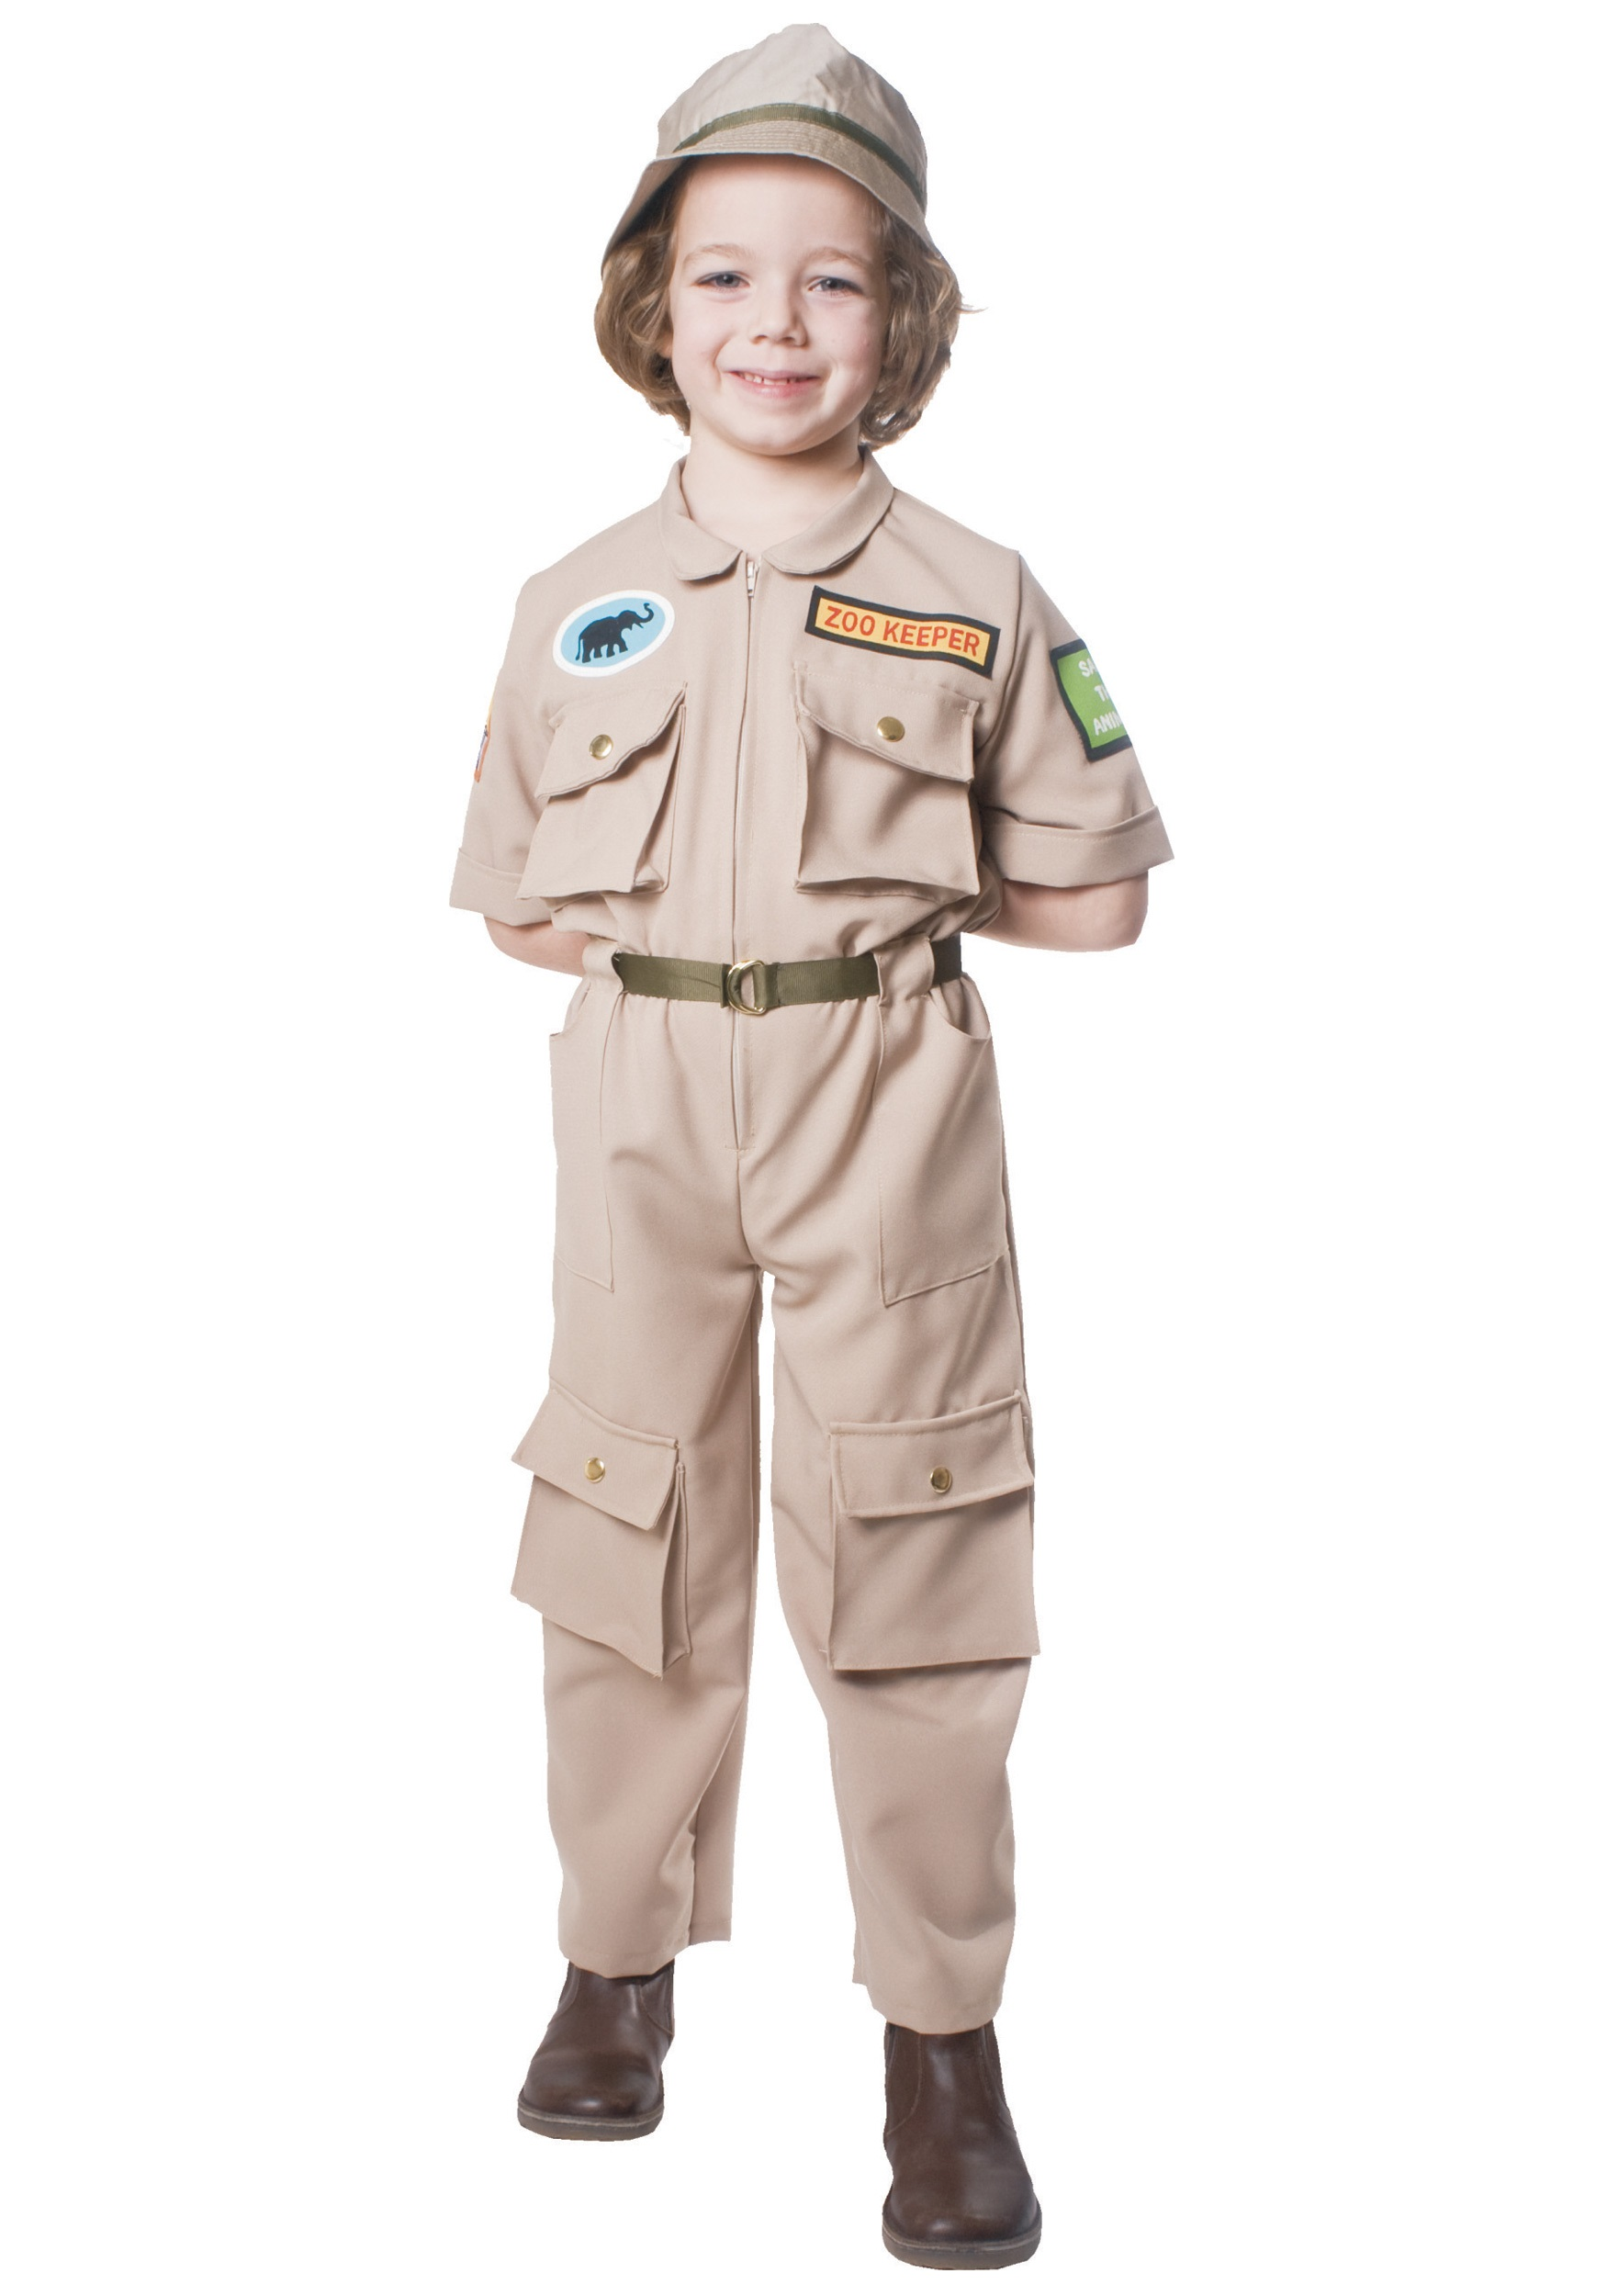 Home Zoo Keeper Child CostumeSafari Outfit For Kids